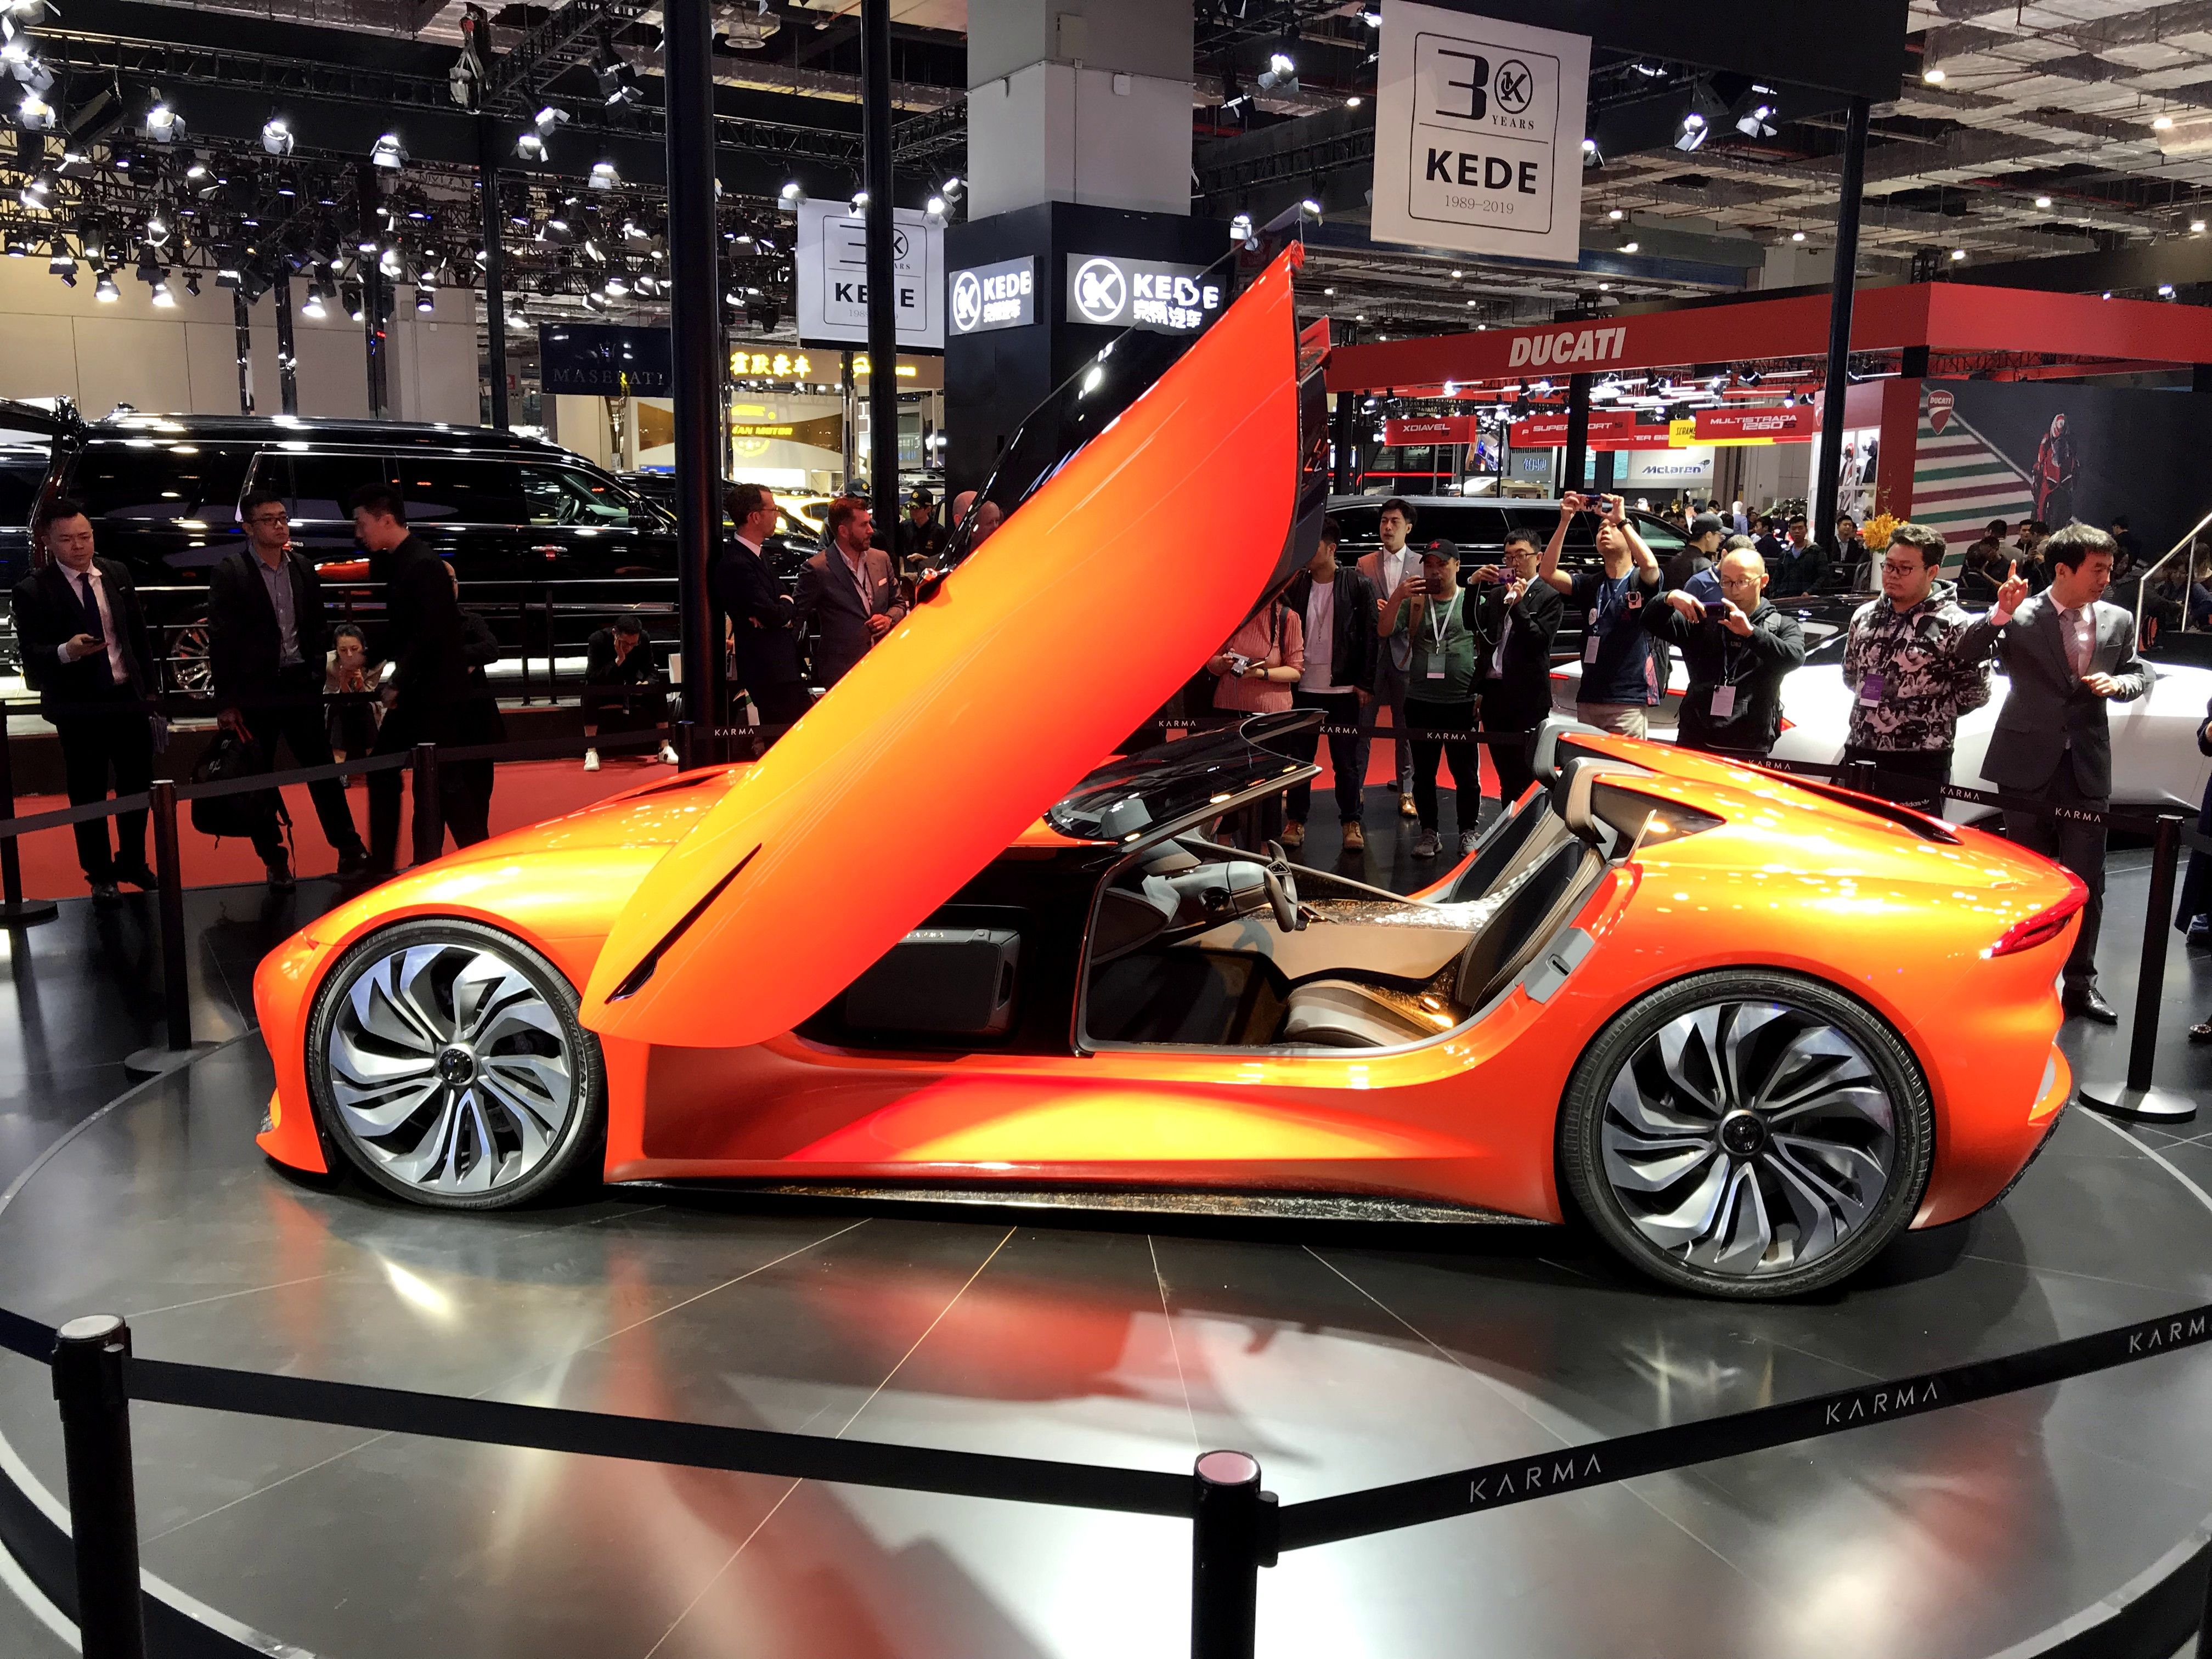 Karma Presents Its Electric Car Vision To China And Vies For